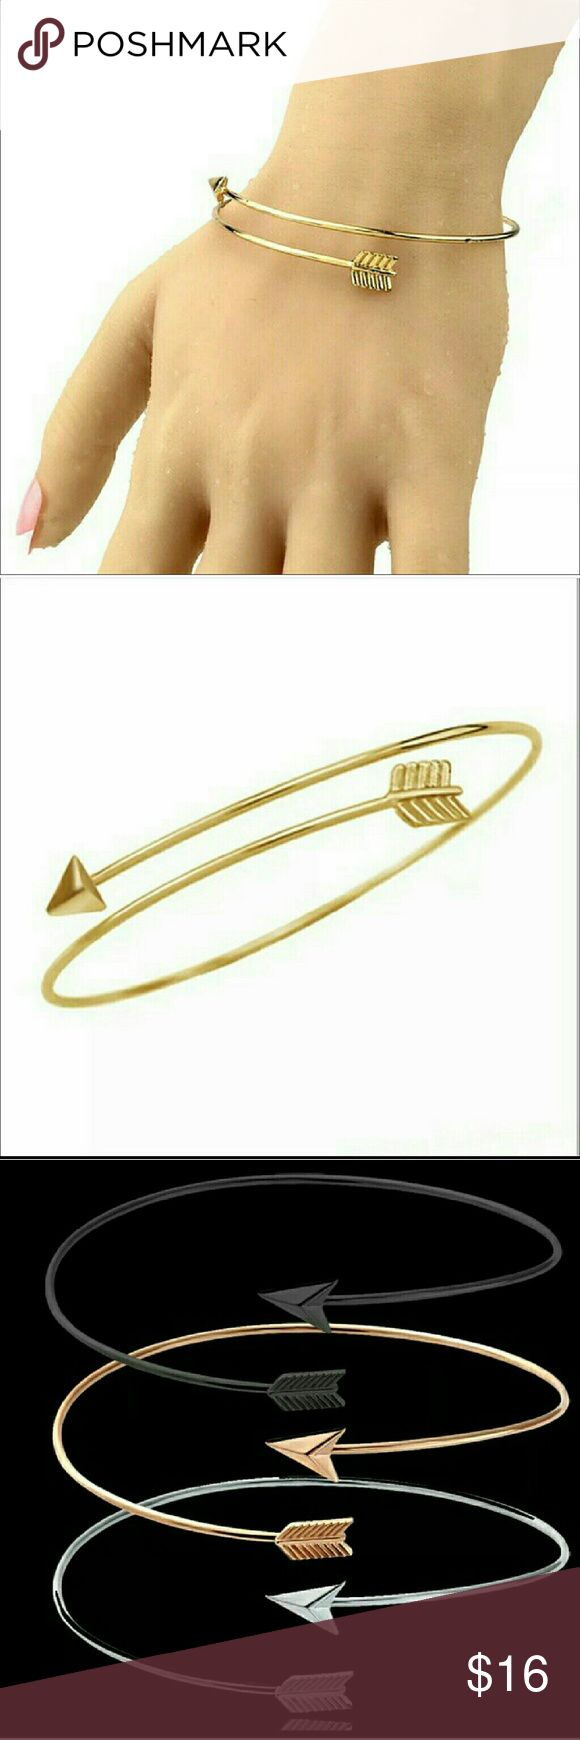 Gold Arrow Bracelet Wrap Boho Jewelry Country Hunt Gorgeous gold colored arrow bracelet,  still new in the package.  It can be adjustable to fit any wrist or upper arm.   Black and silver bracelet, silver Earrings and ring are also available.   Smoke free home. I will gladly bundle items to give you a discount (the more you buy, the cheaper I can let everything go!). Many items can be added on for only $1. Jewelry Bracelets